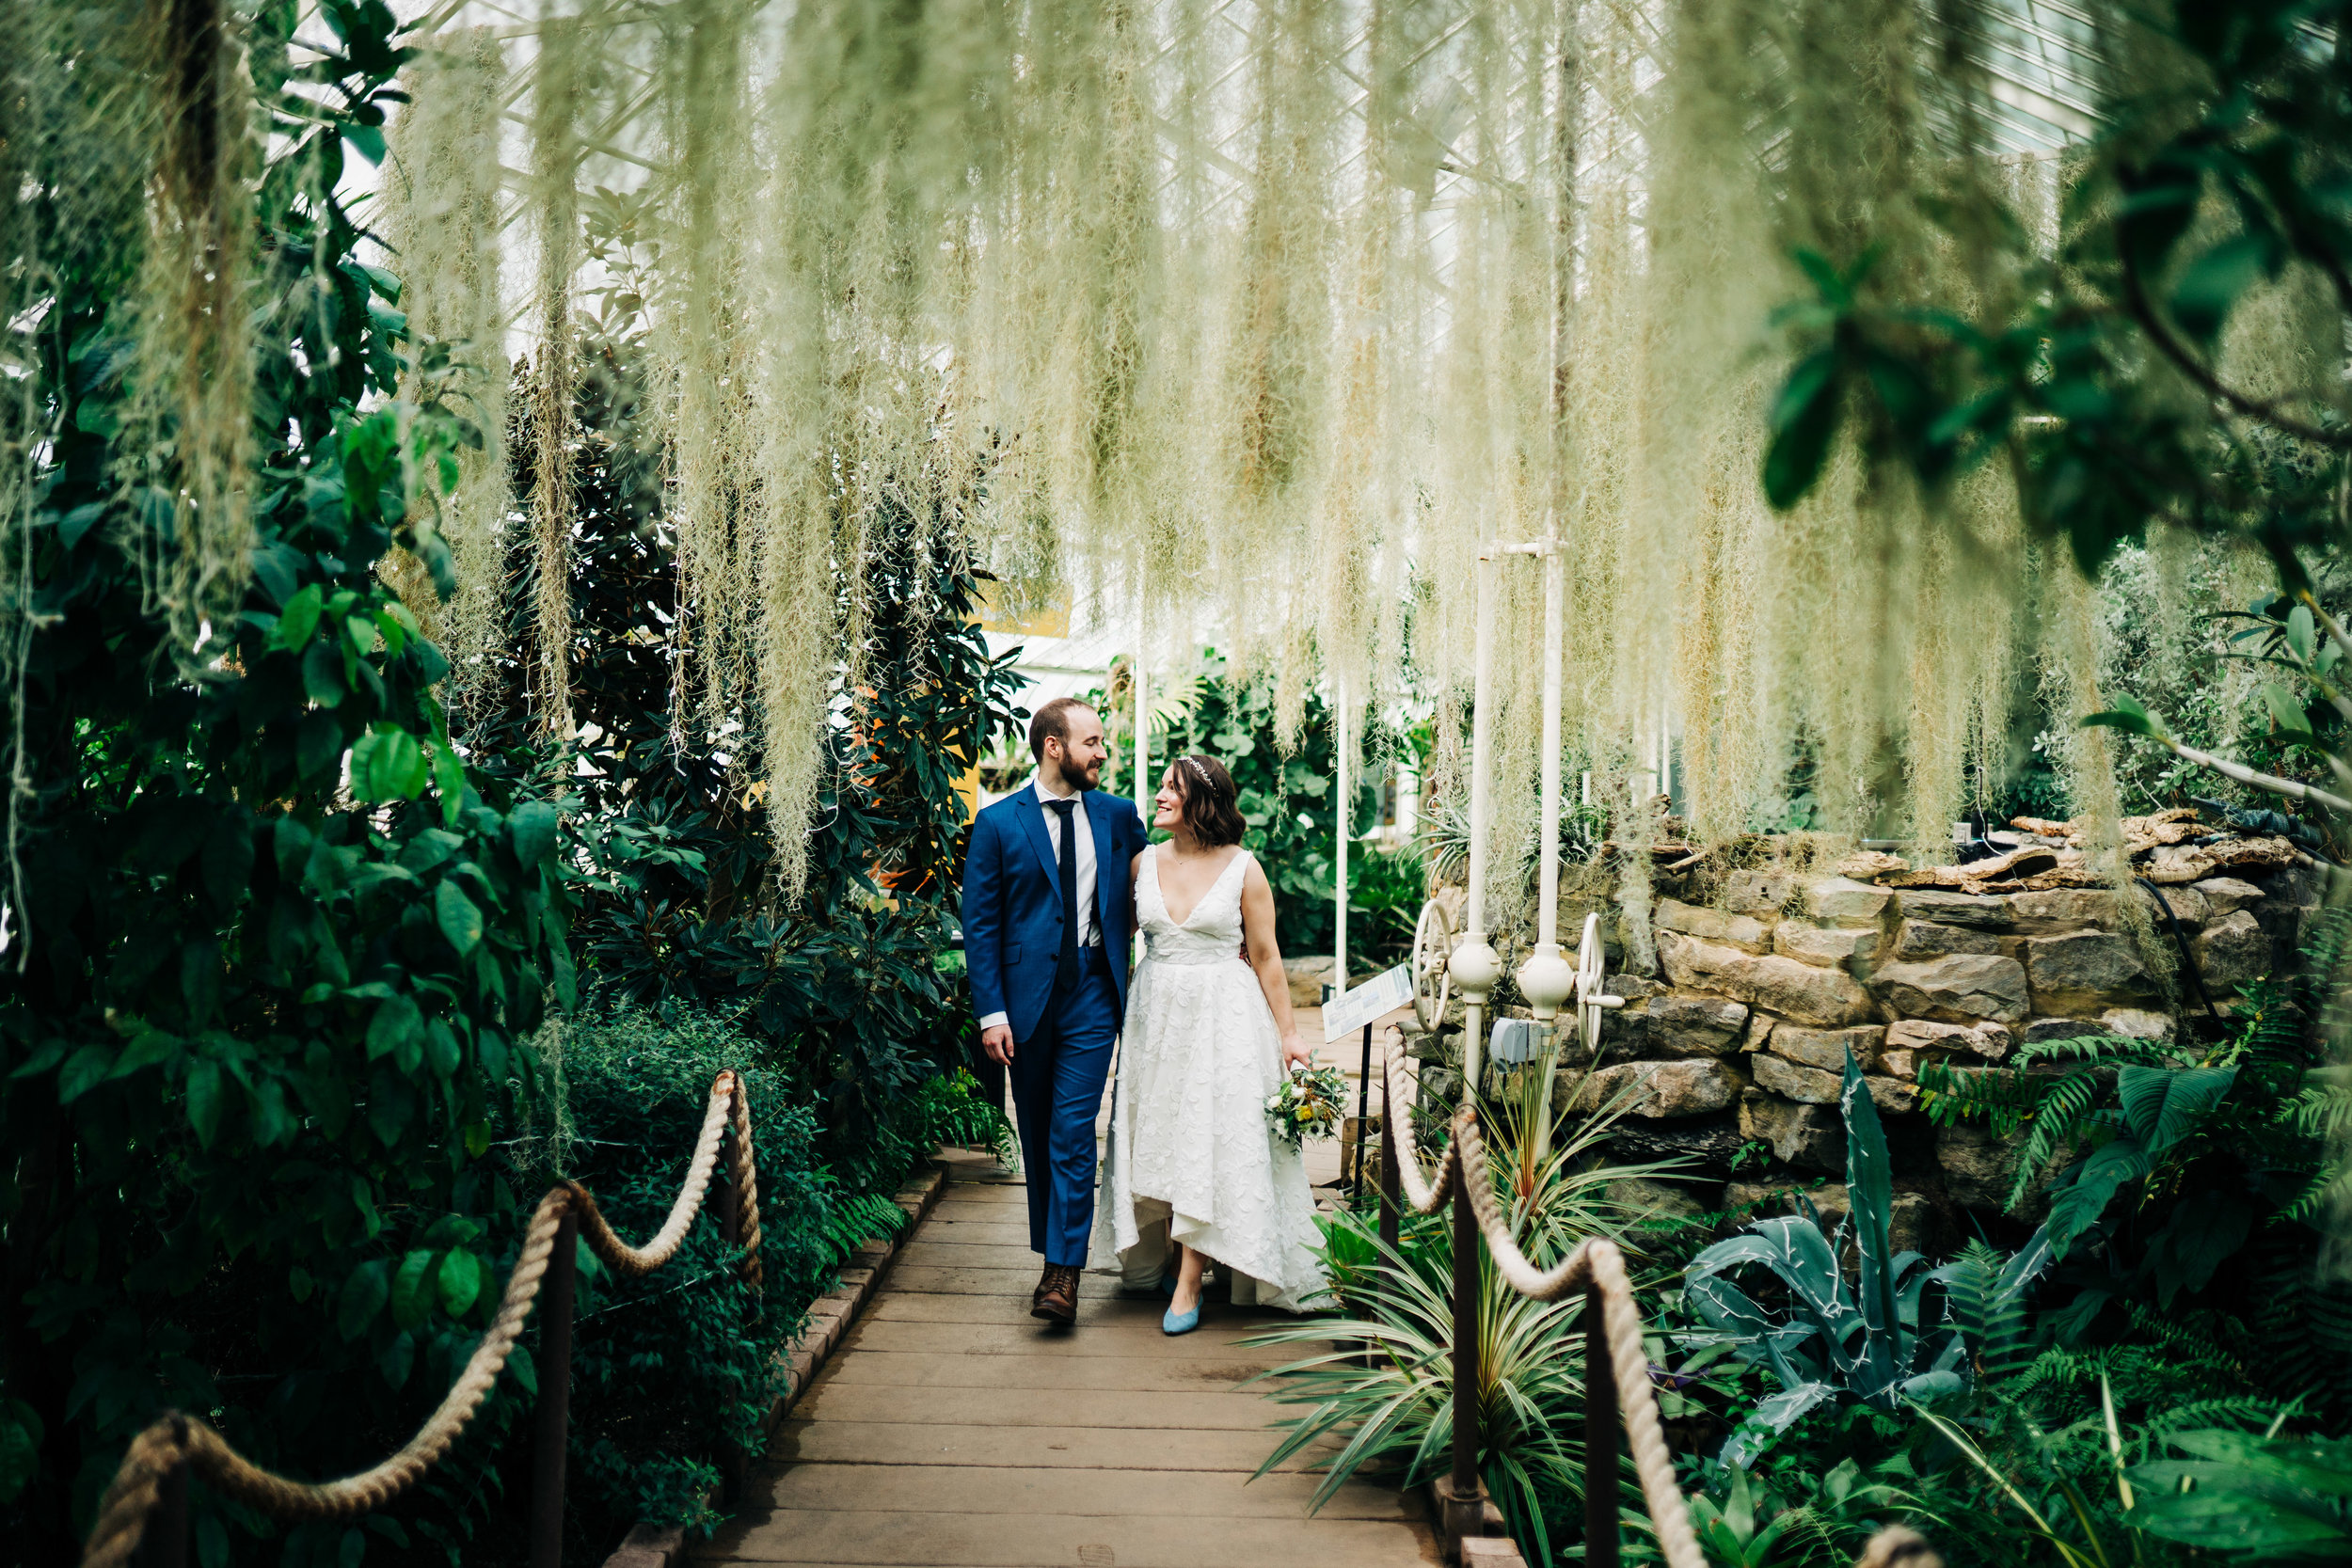 Megan and Scott Wedding Photography at Buffalo NY Botanical Gardens by Stefan Ludwig Photography-126.jpg